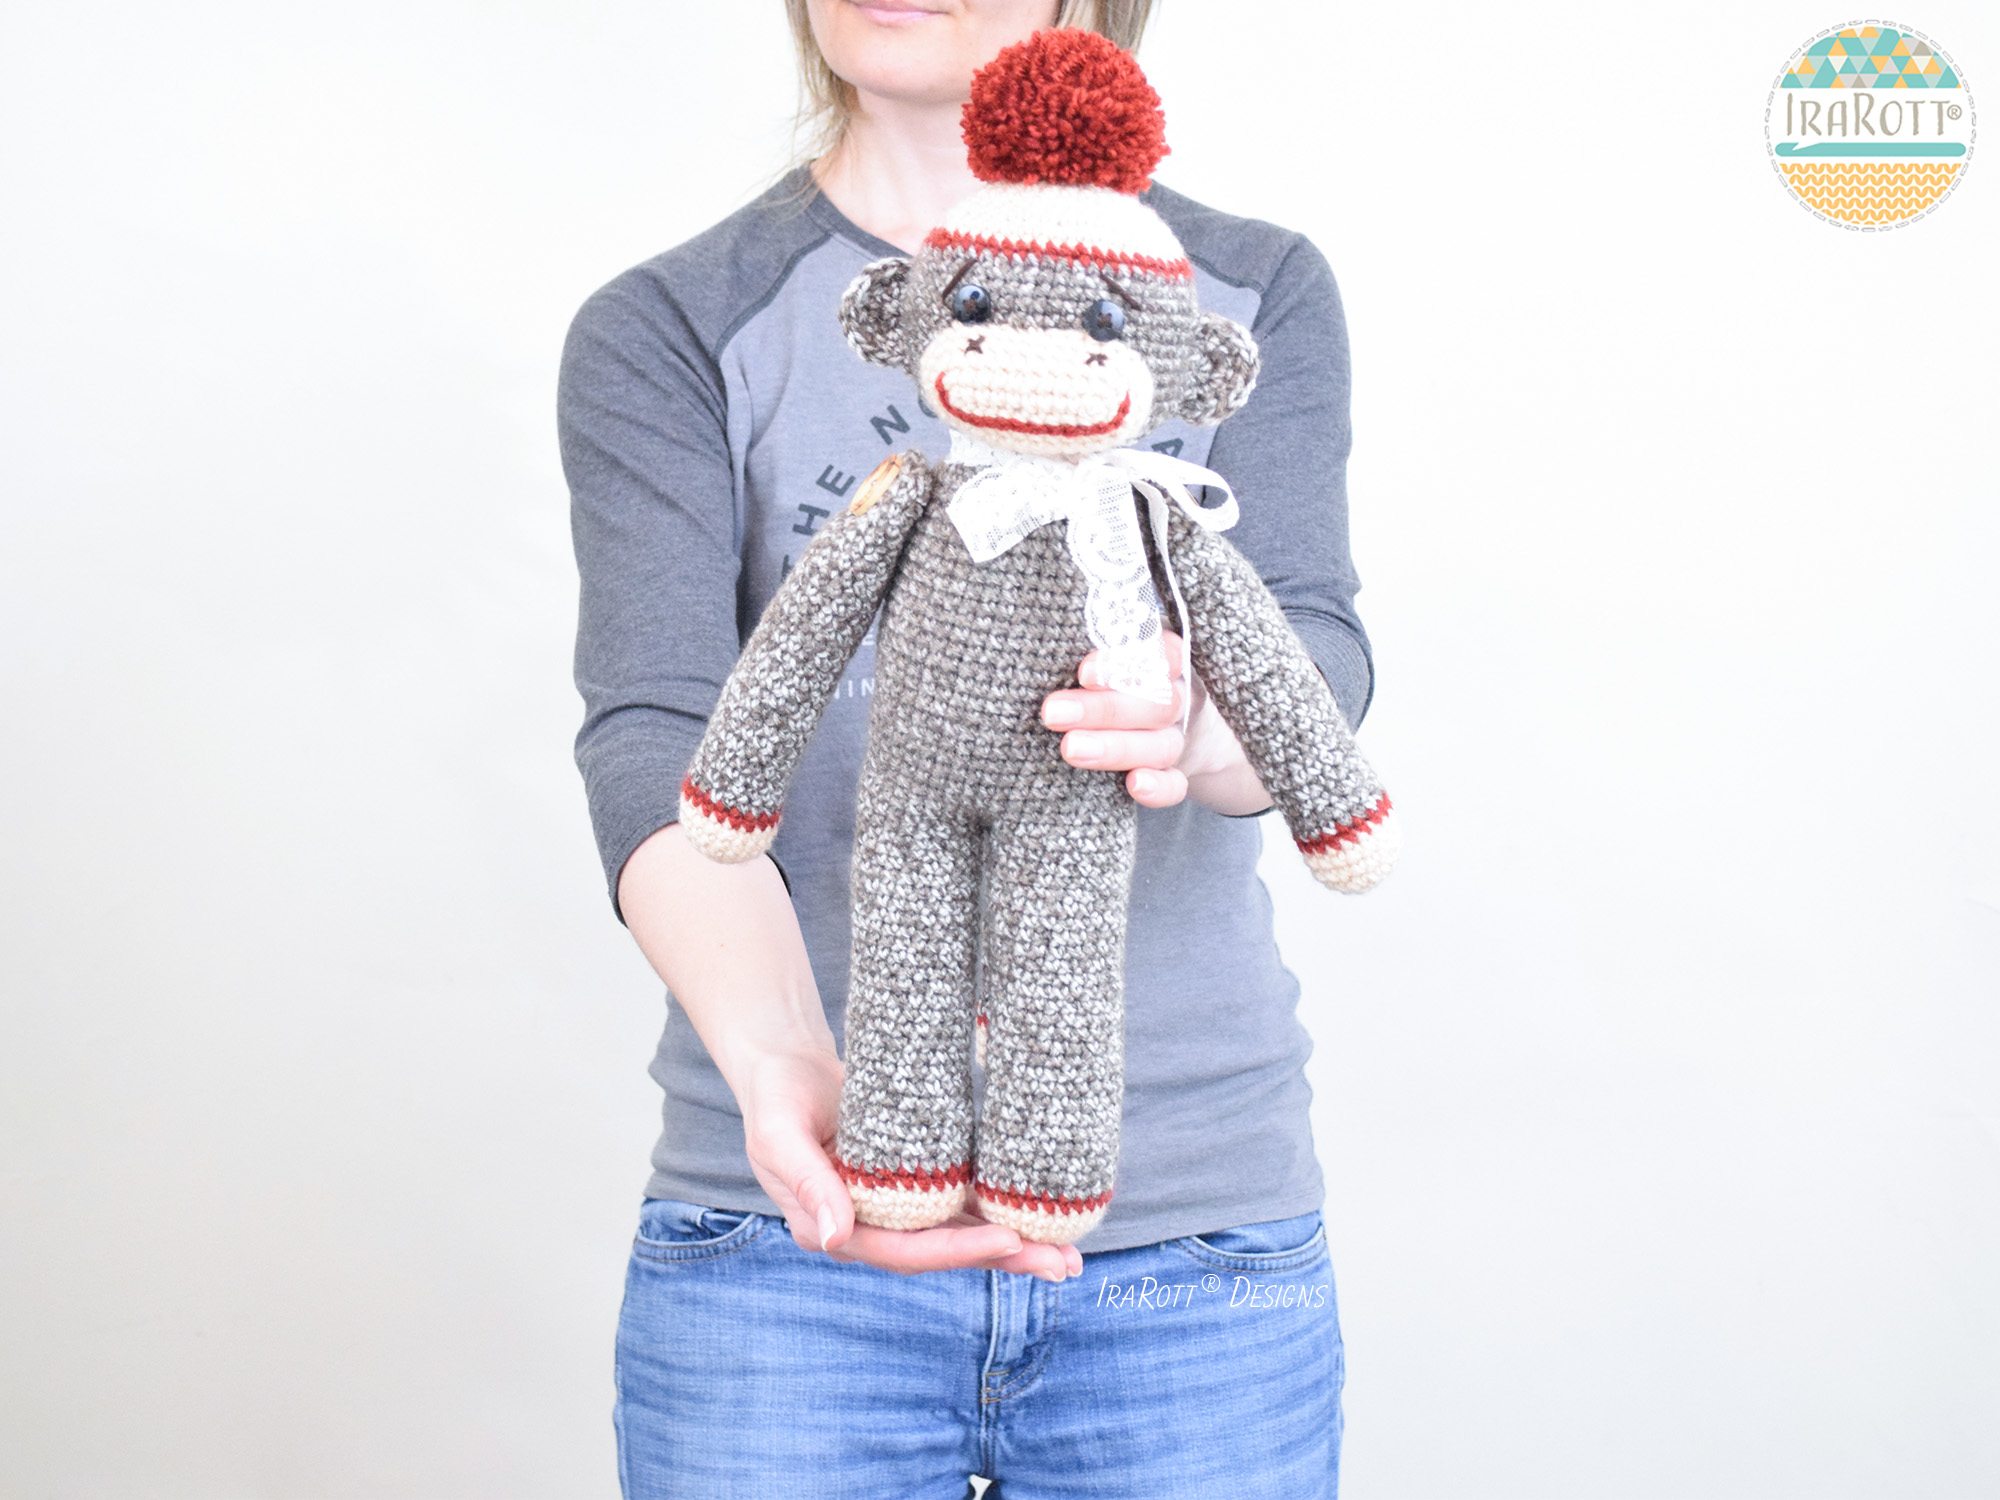 Ravelry: George the Monkey - Large Amigurumi Stuffed Animal ... | 1125x1500